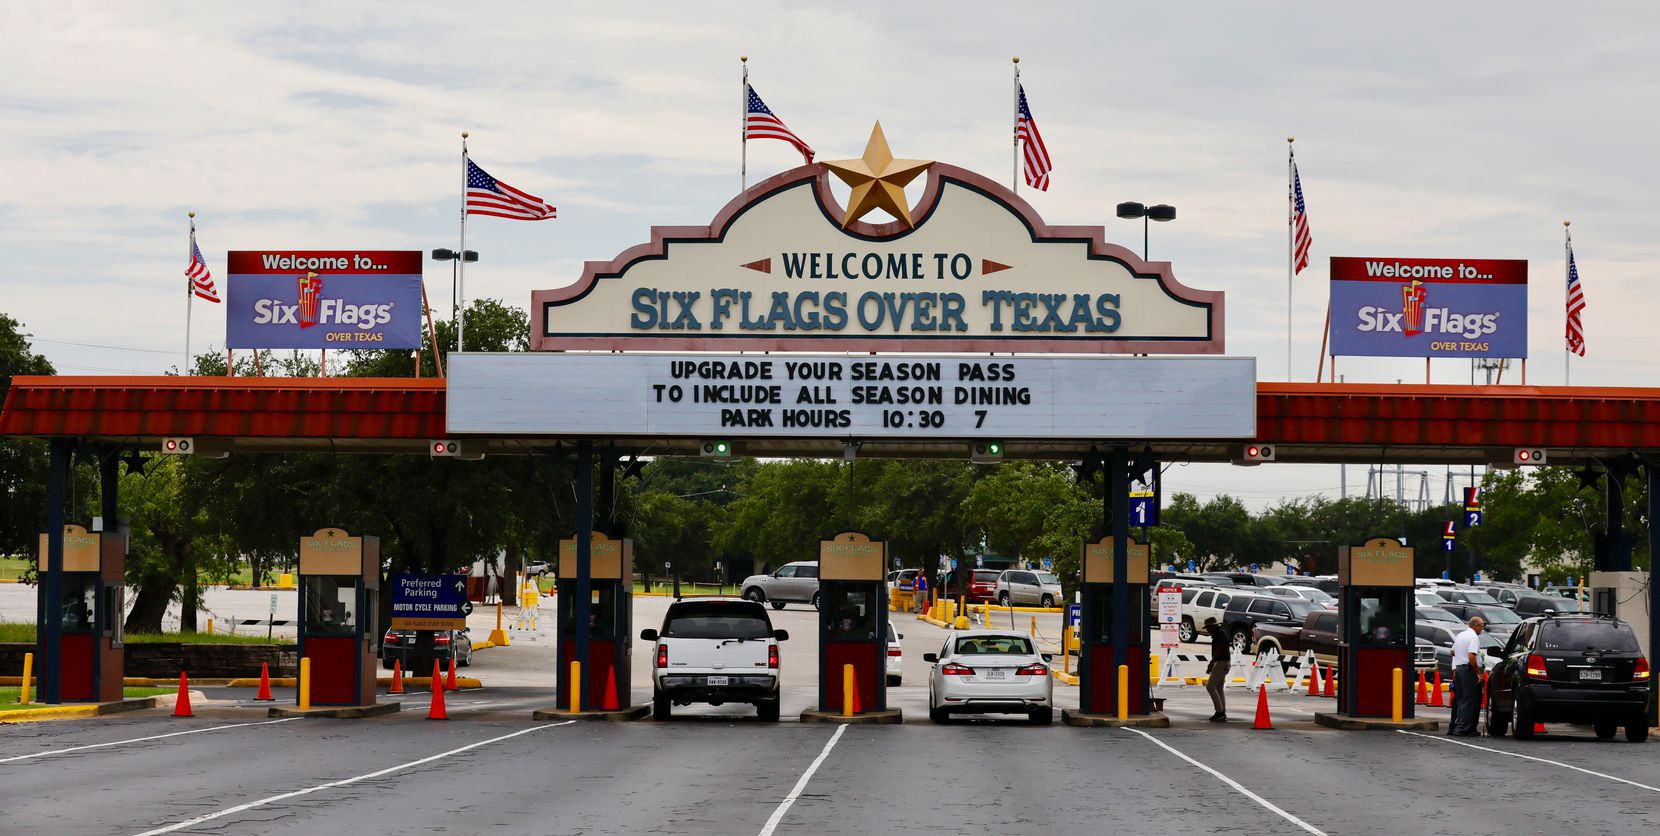 """U.S flags flew on the """"Welcome to Six Flags Over Texas"""" sign on Aug. 18, 2017."""